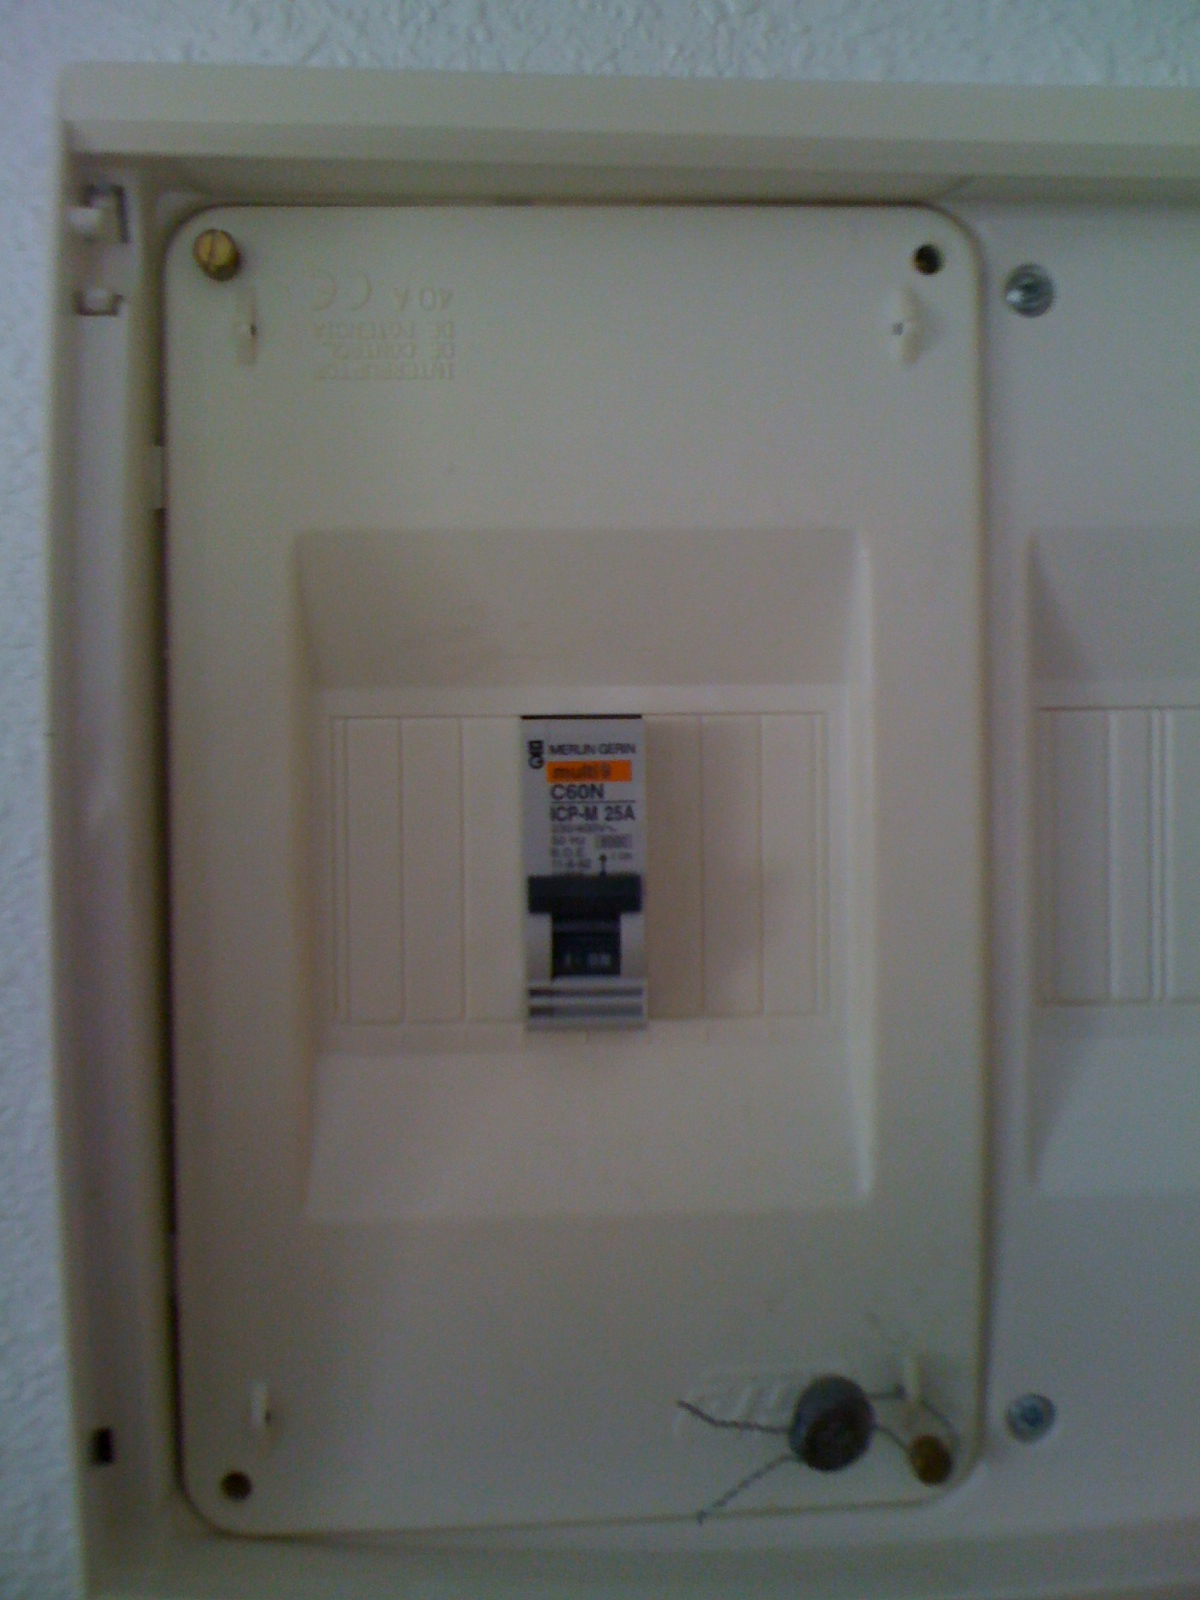 Sparks In Spain The Icp Plain English Spark Fuse Breaker Box Sealed